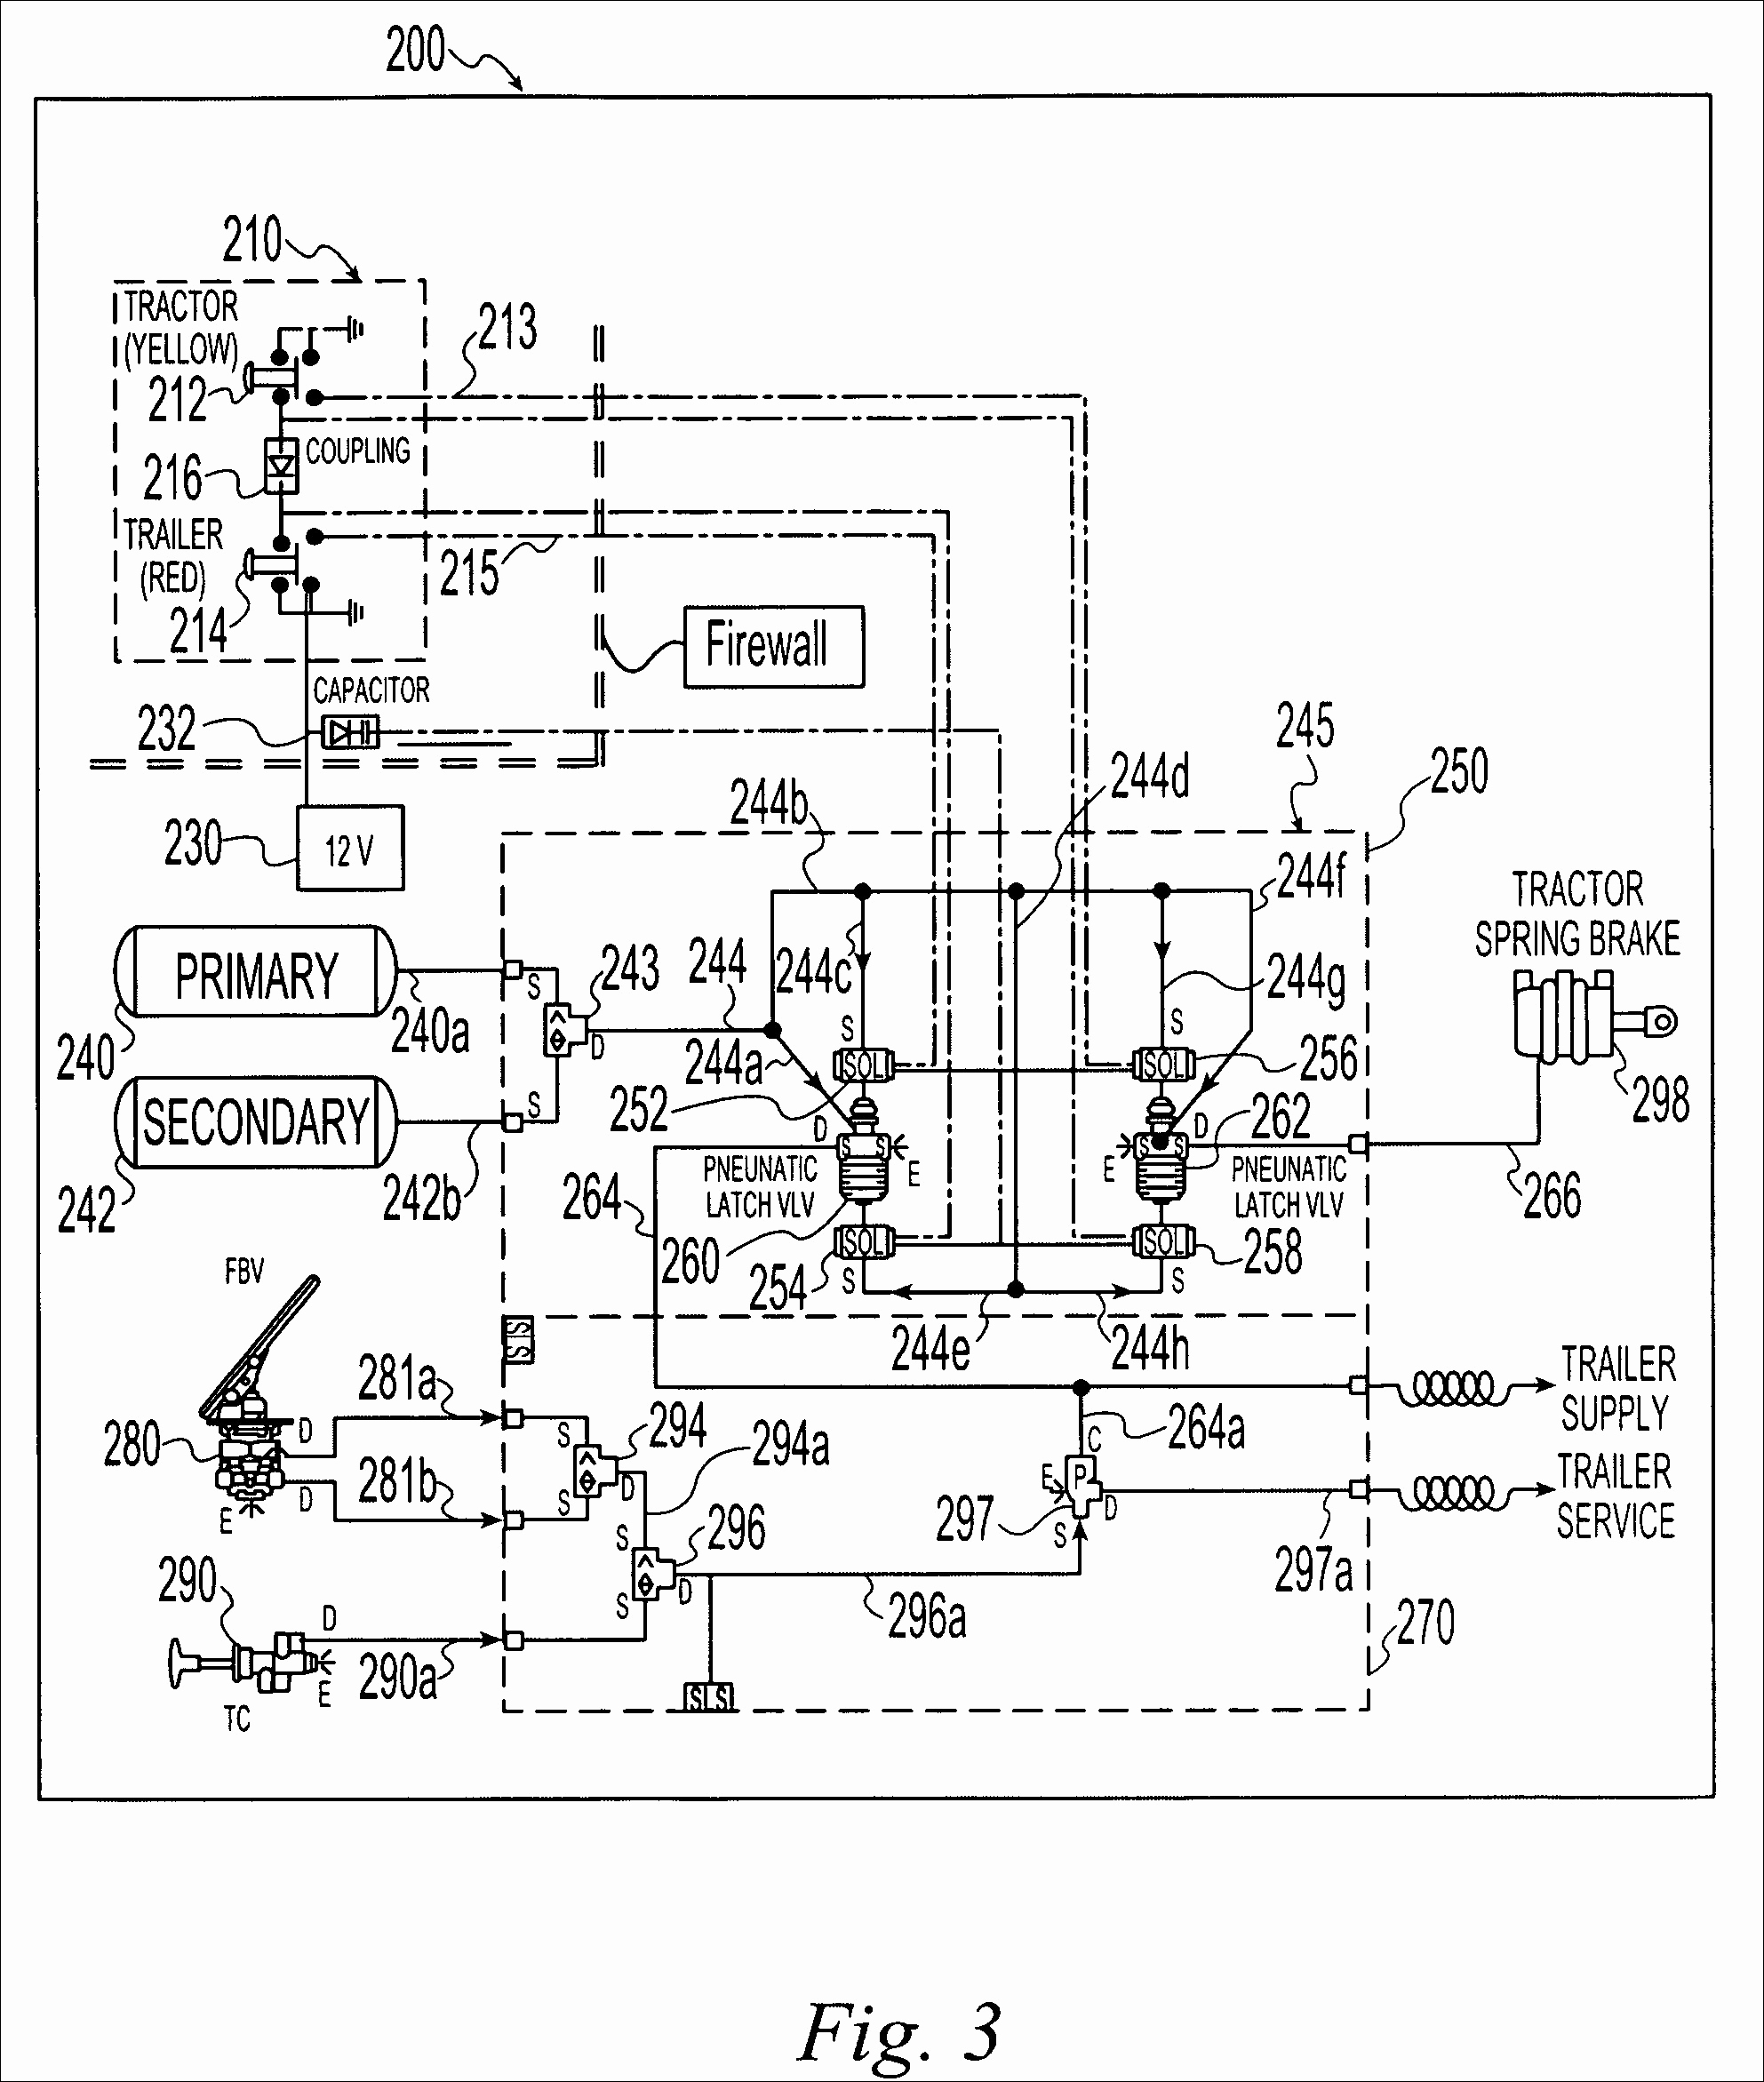 1987 Chevy Tbi Wiring Diagram from wholefoodsonabudget.com